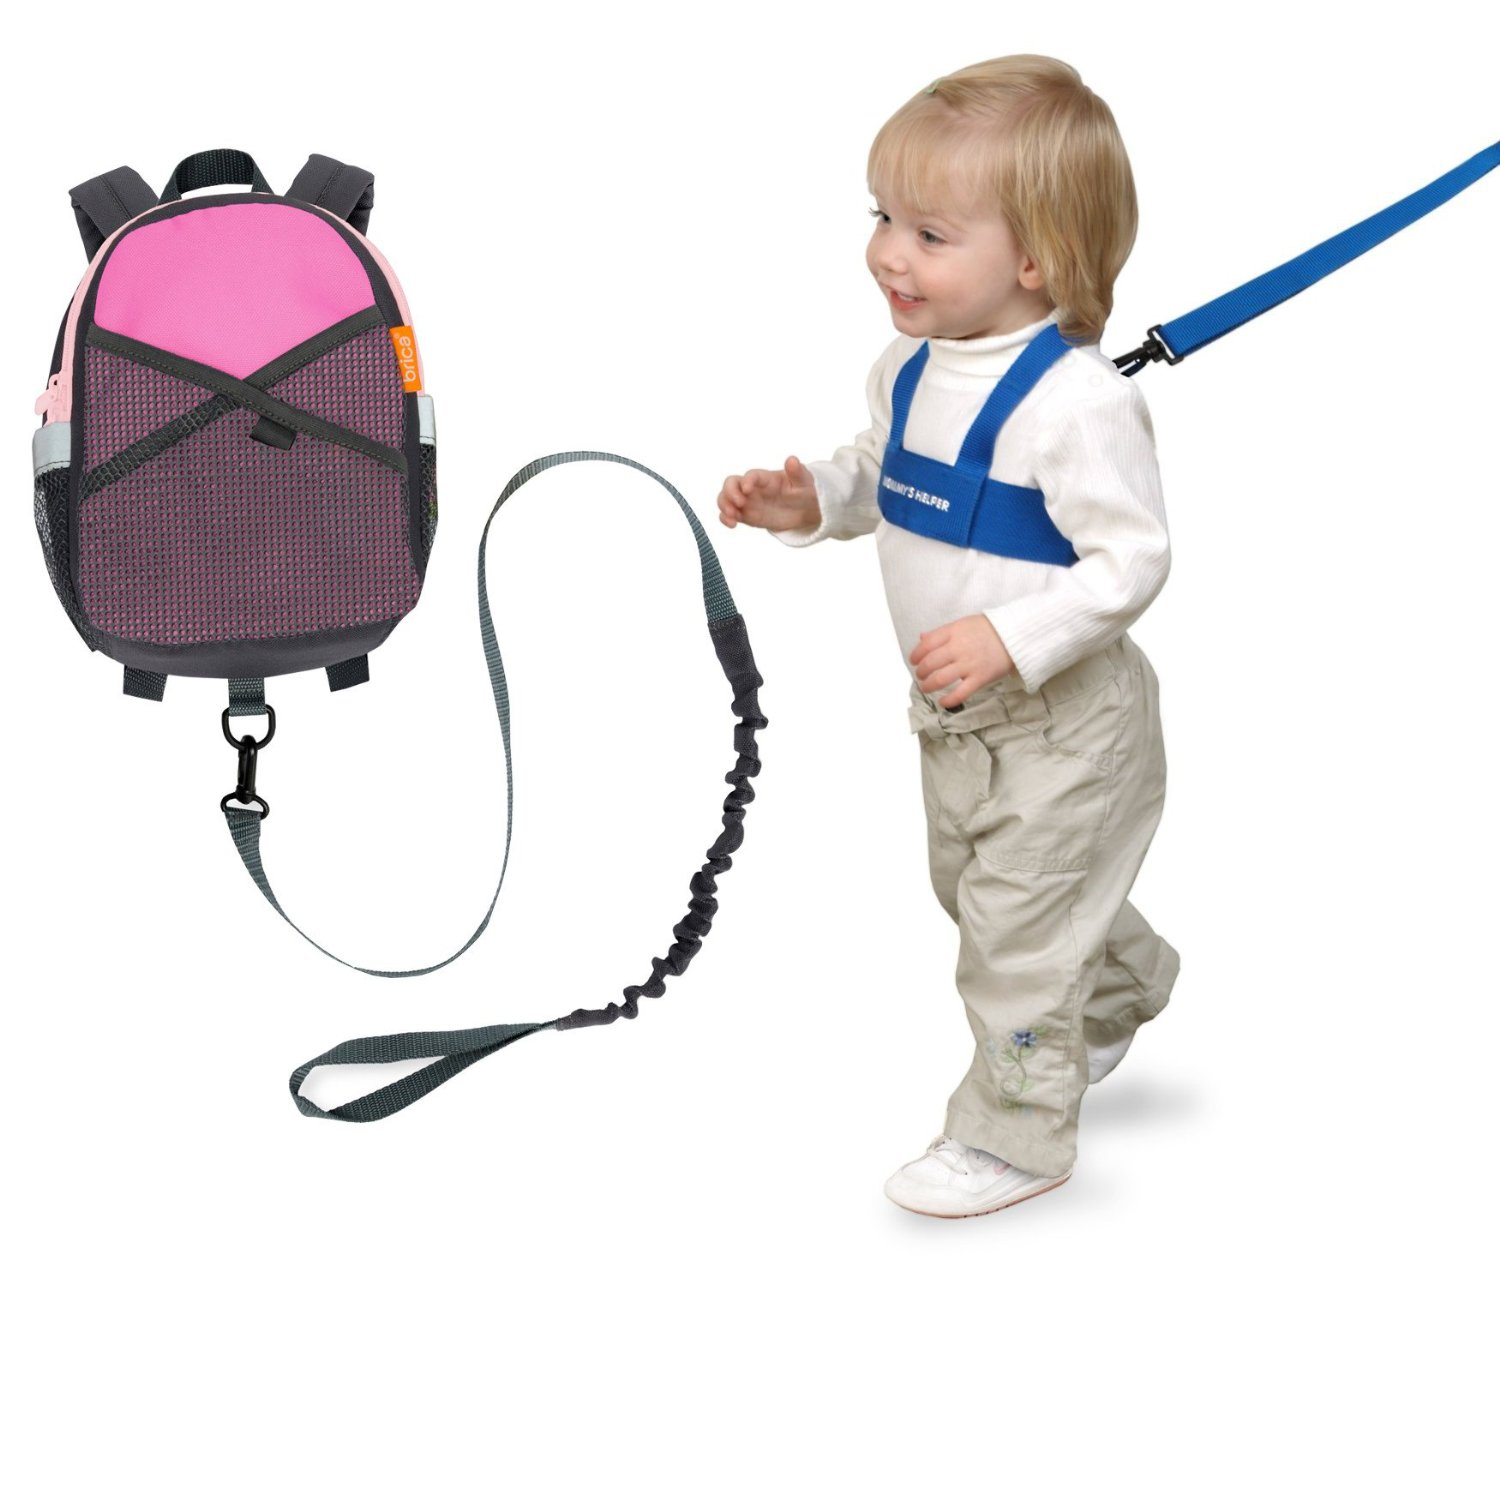 Brica By-My-Side Safety Harness Backpack, Pink with Kid Keeper by Brica